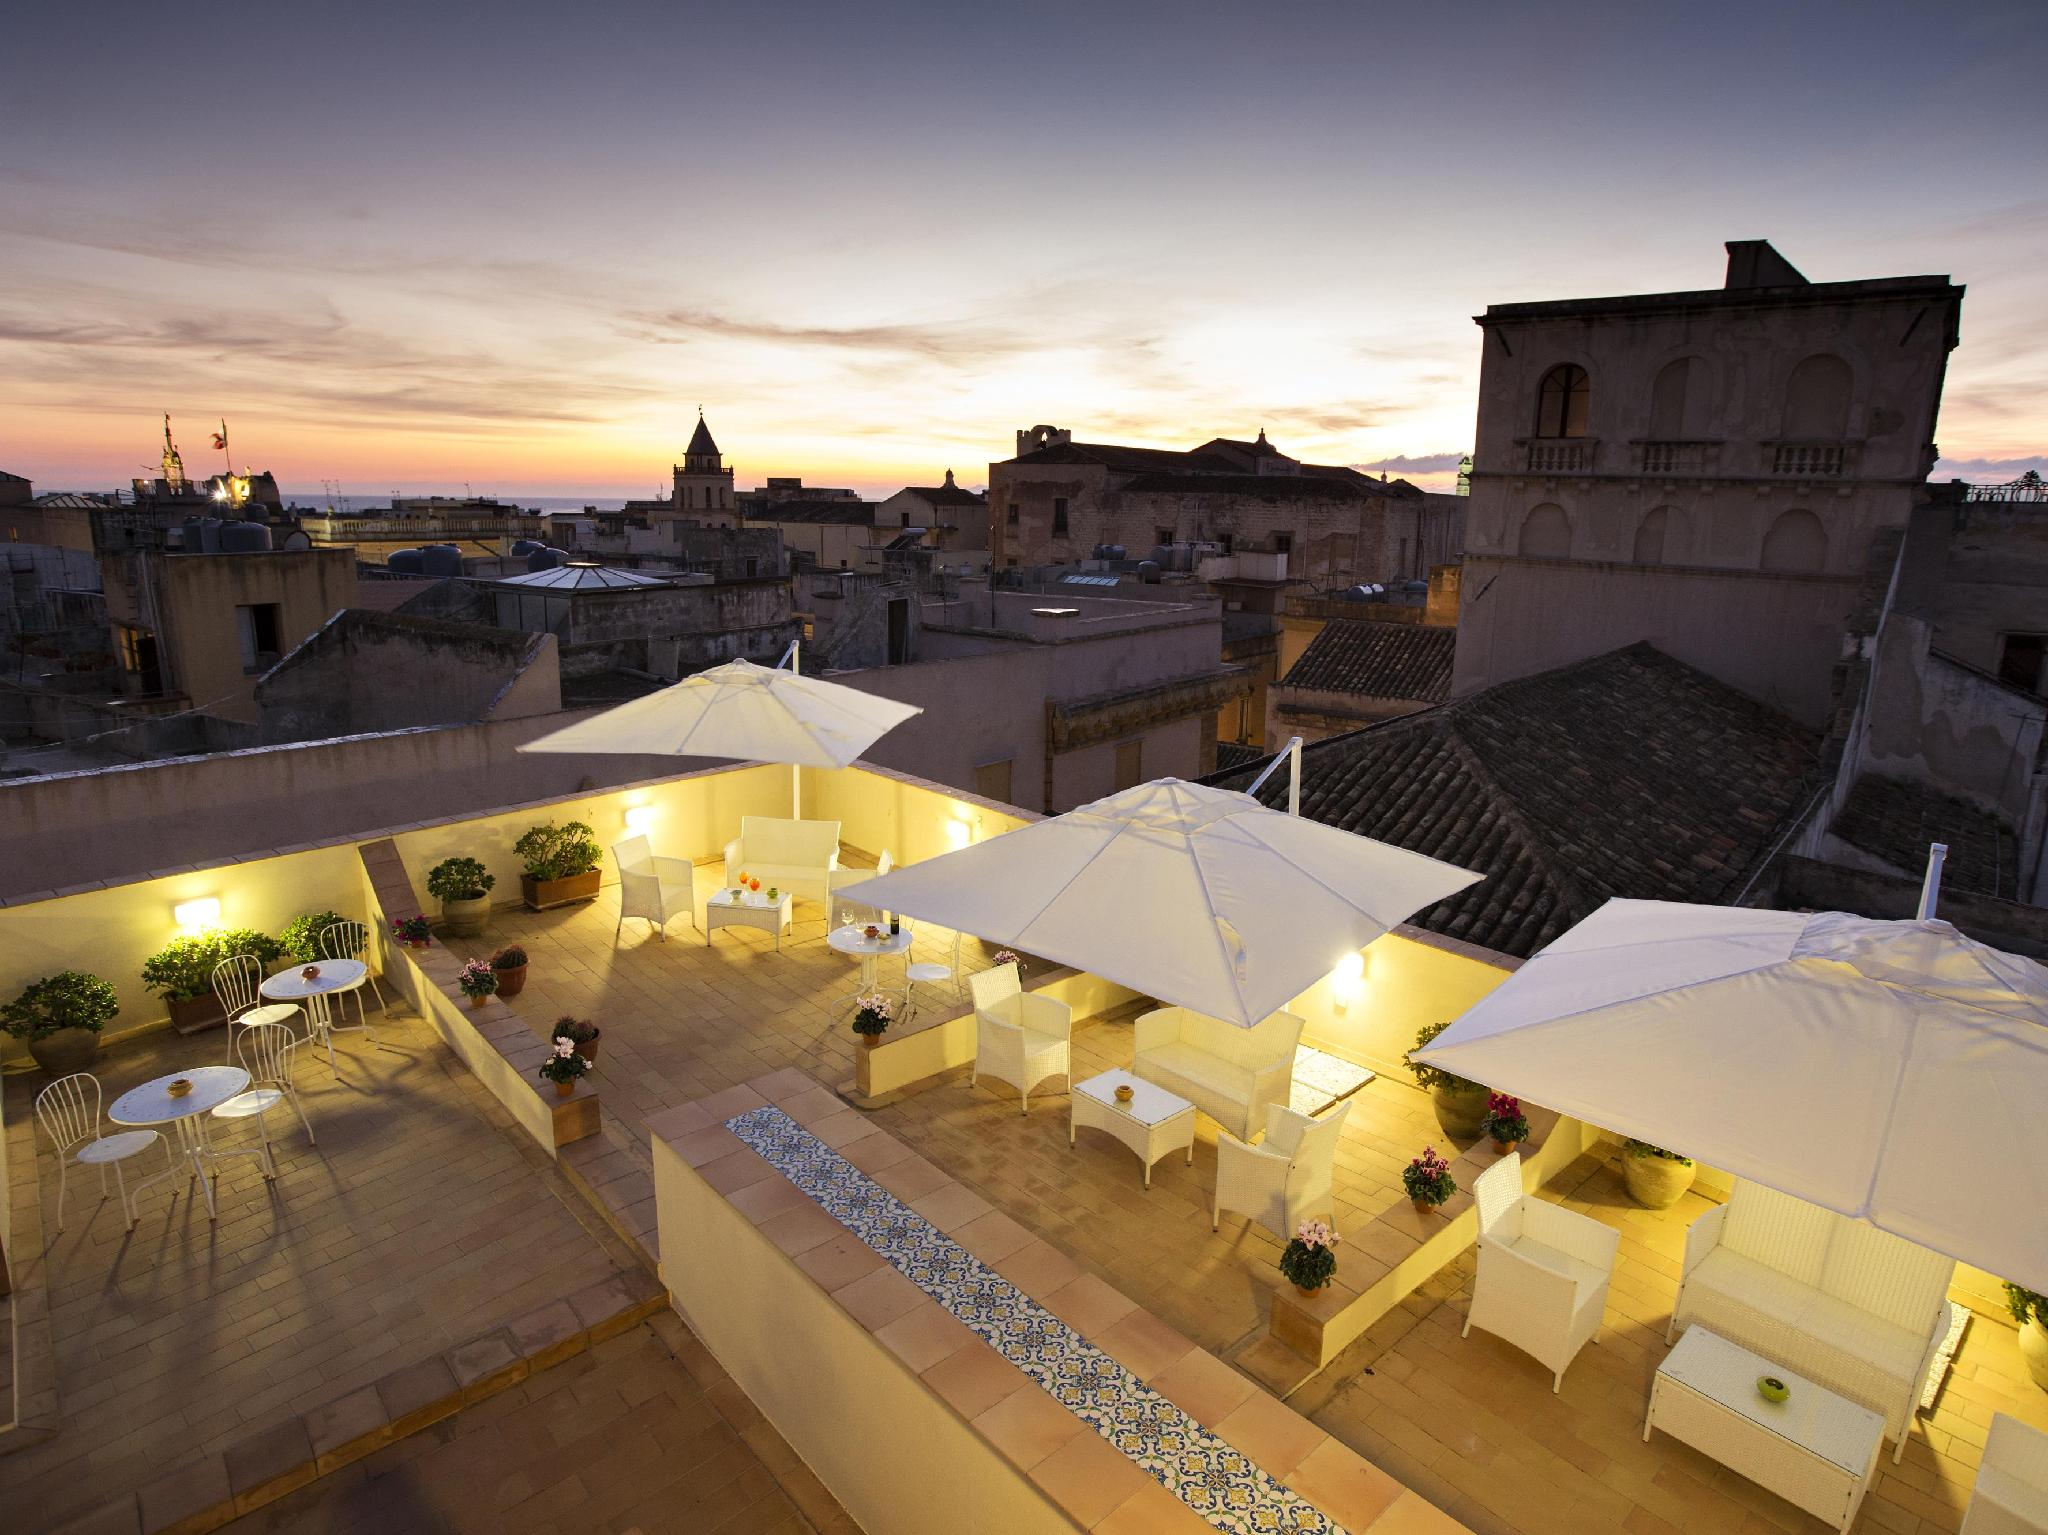 Townhouse in Trapani on the beach